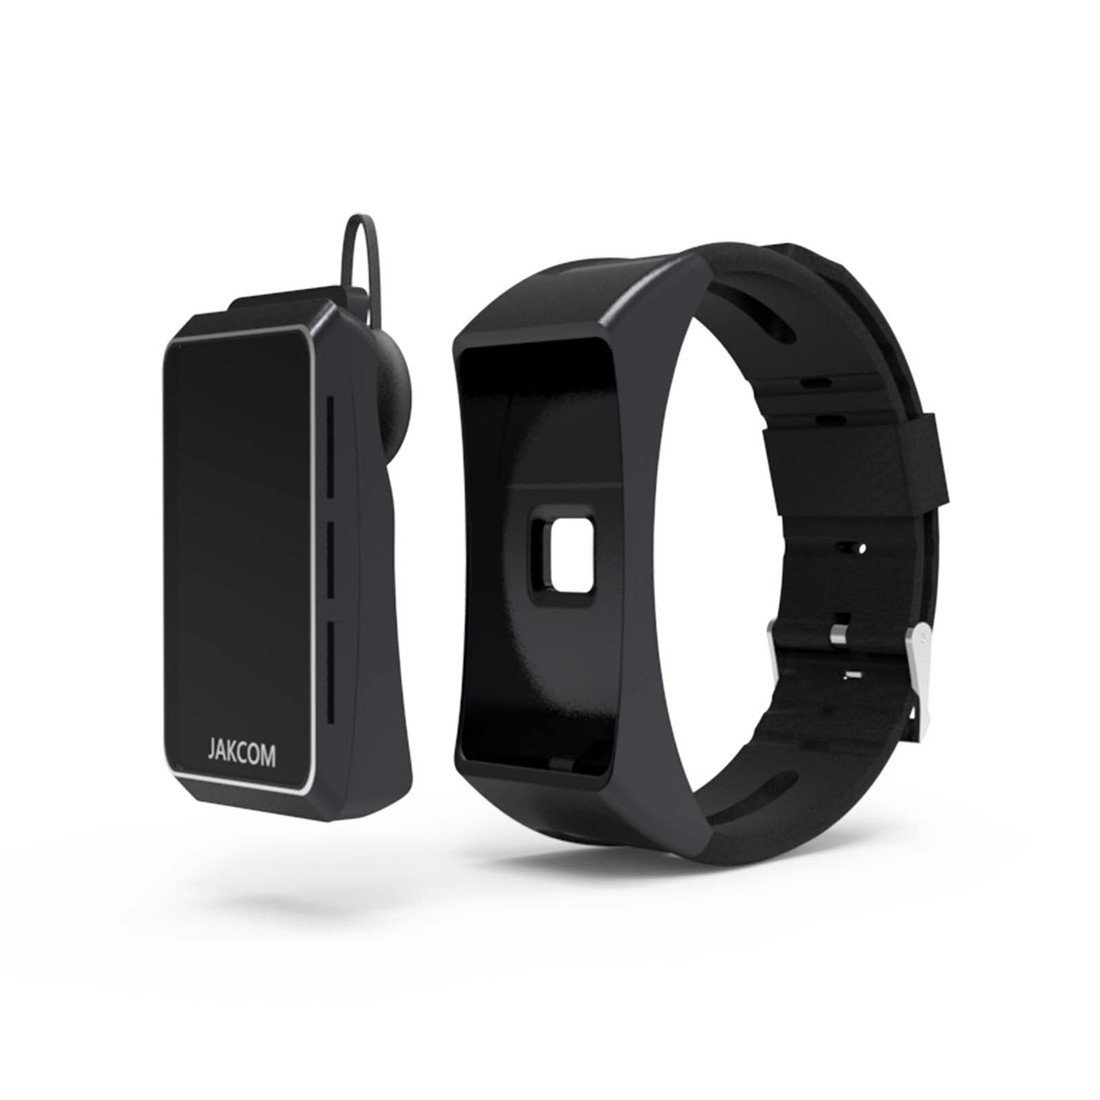 JKZ Smart Bracelet Smart Watch Heart rate monitoring Motion detection Bluetooth headset Smart watch features combined (black)